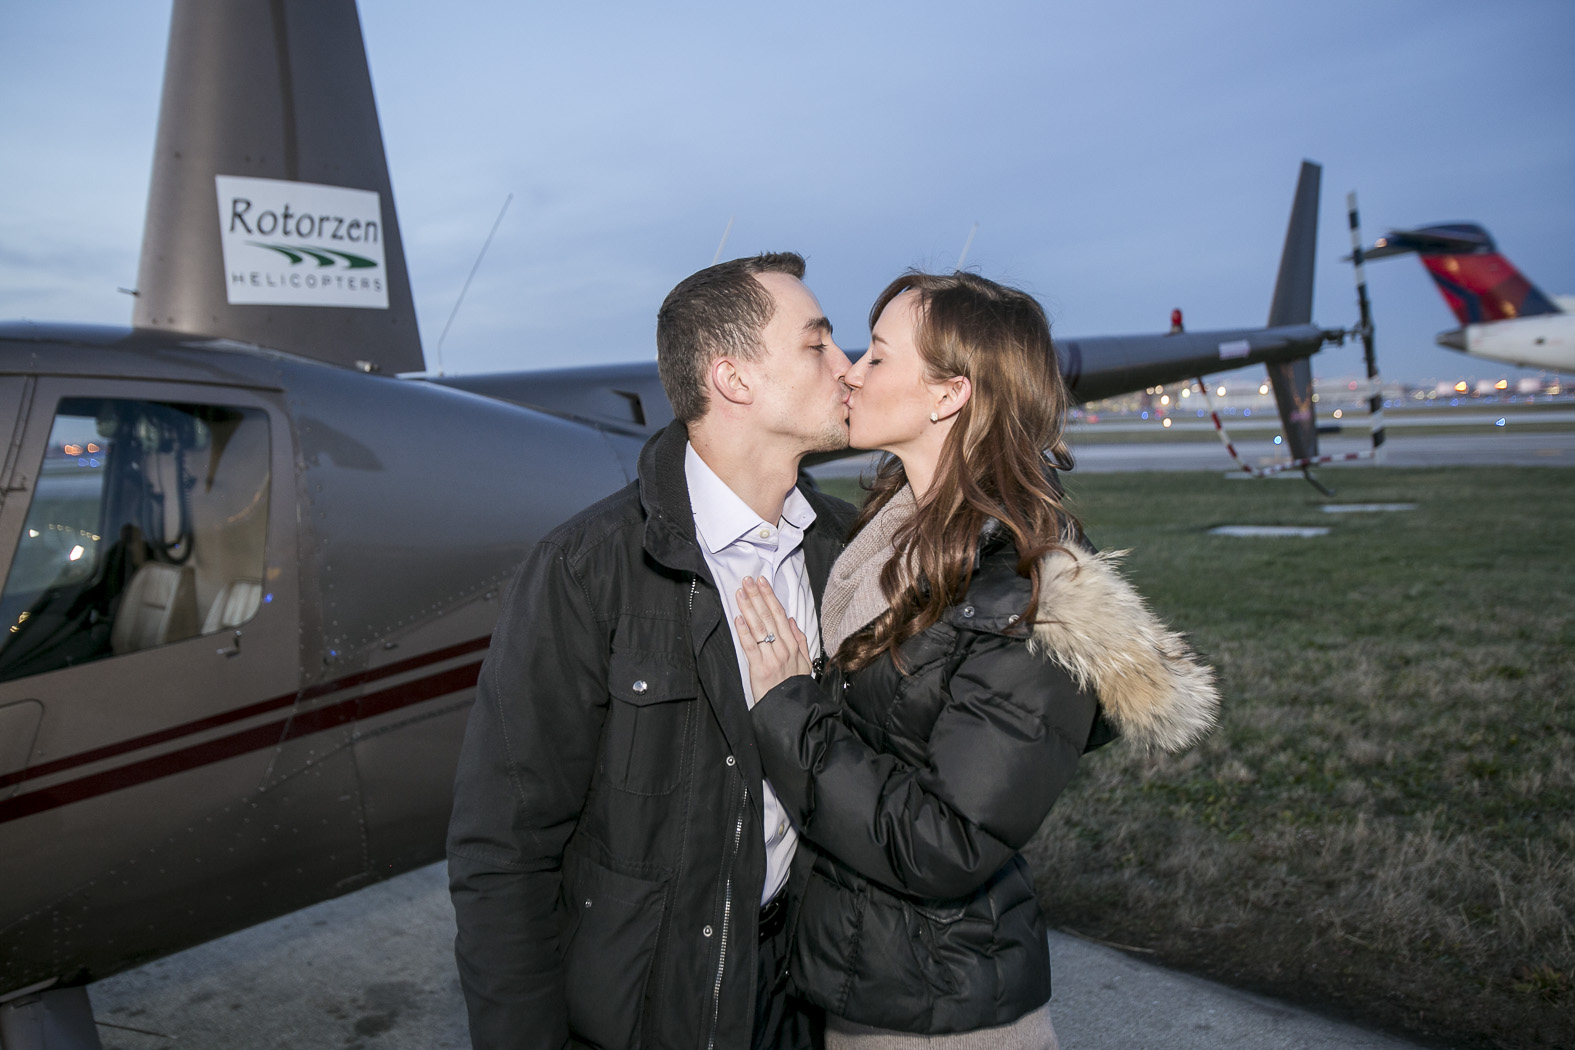 Helicopter Tour Proposal